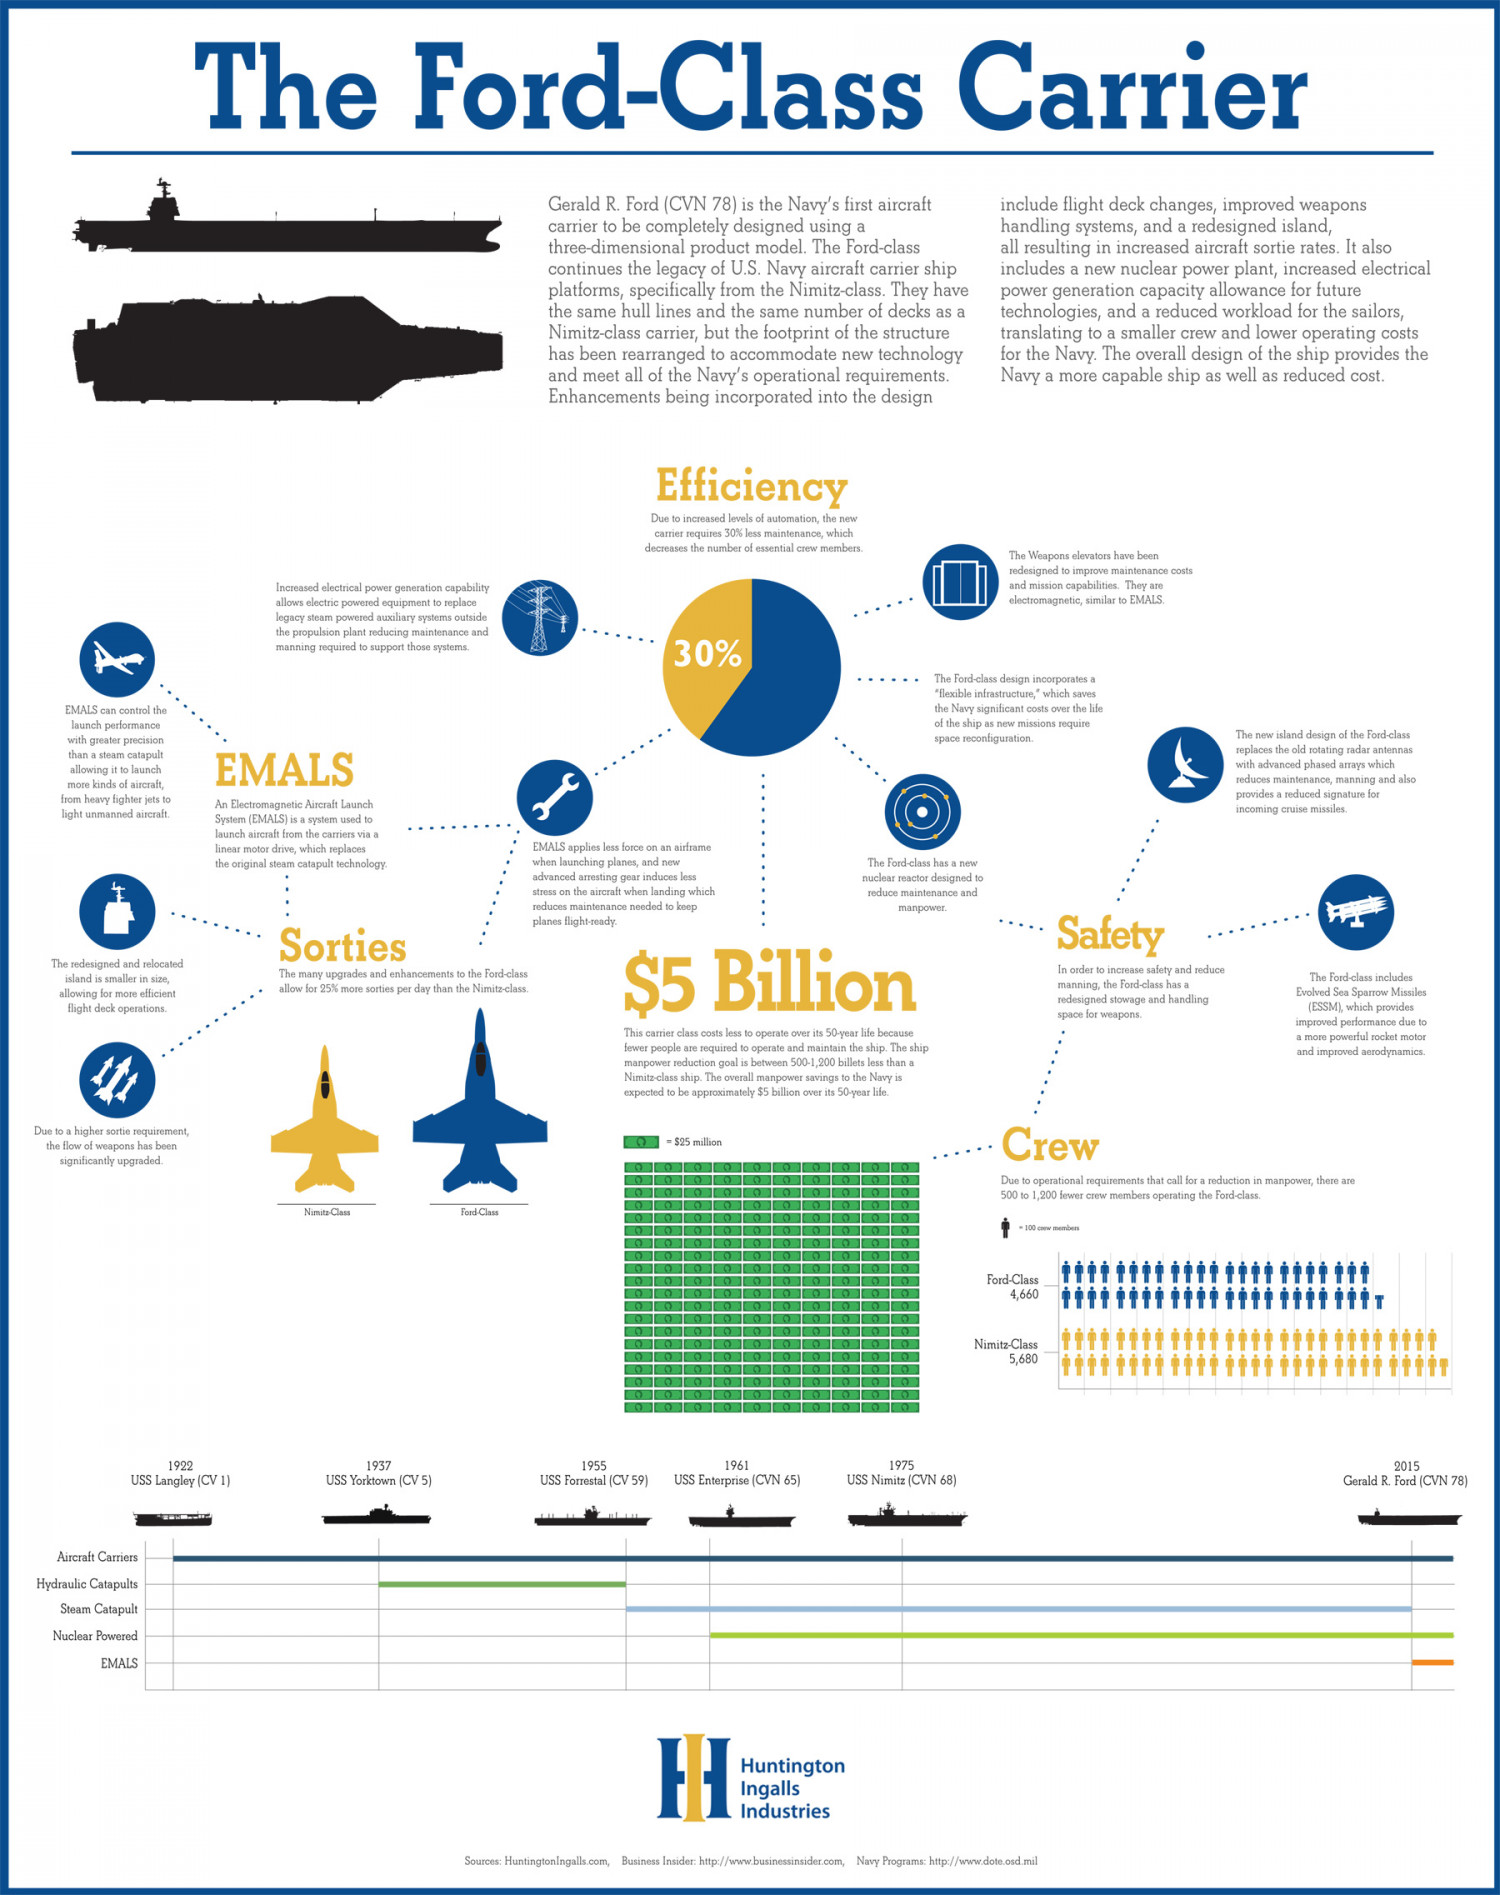 The Ford-Class Carrier Infographic